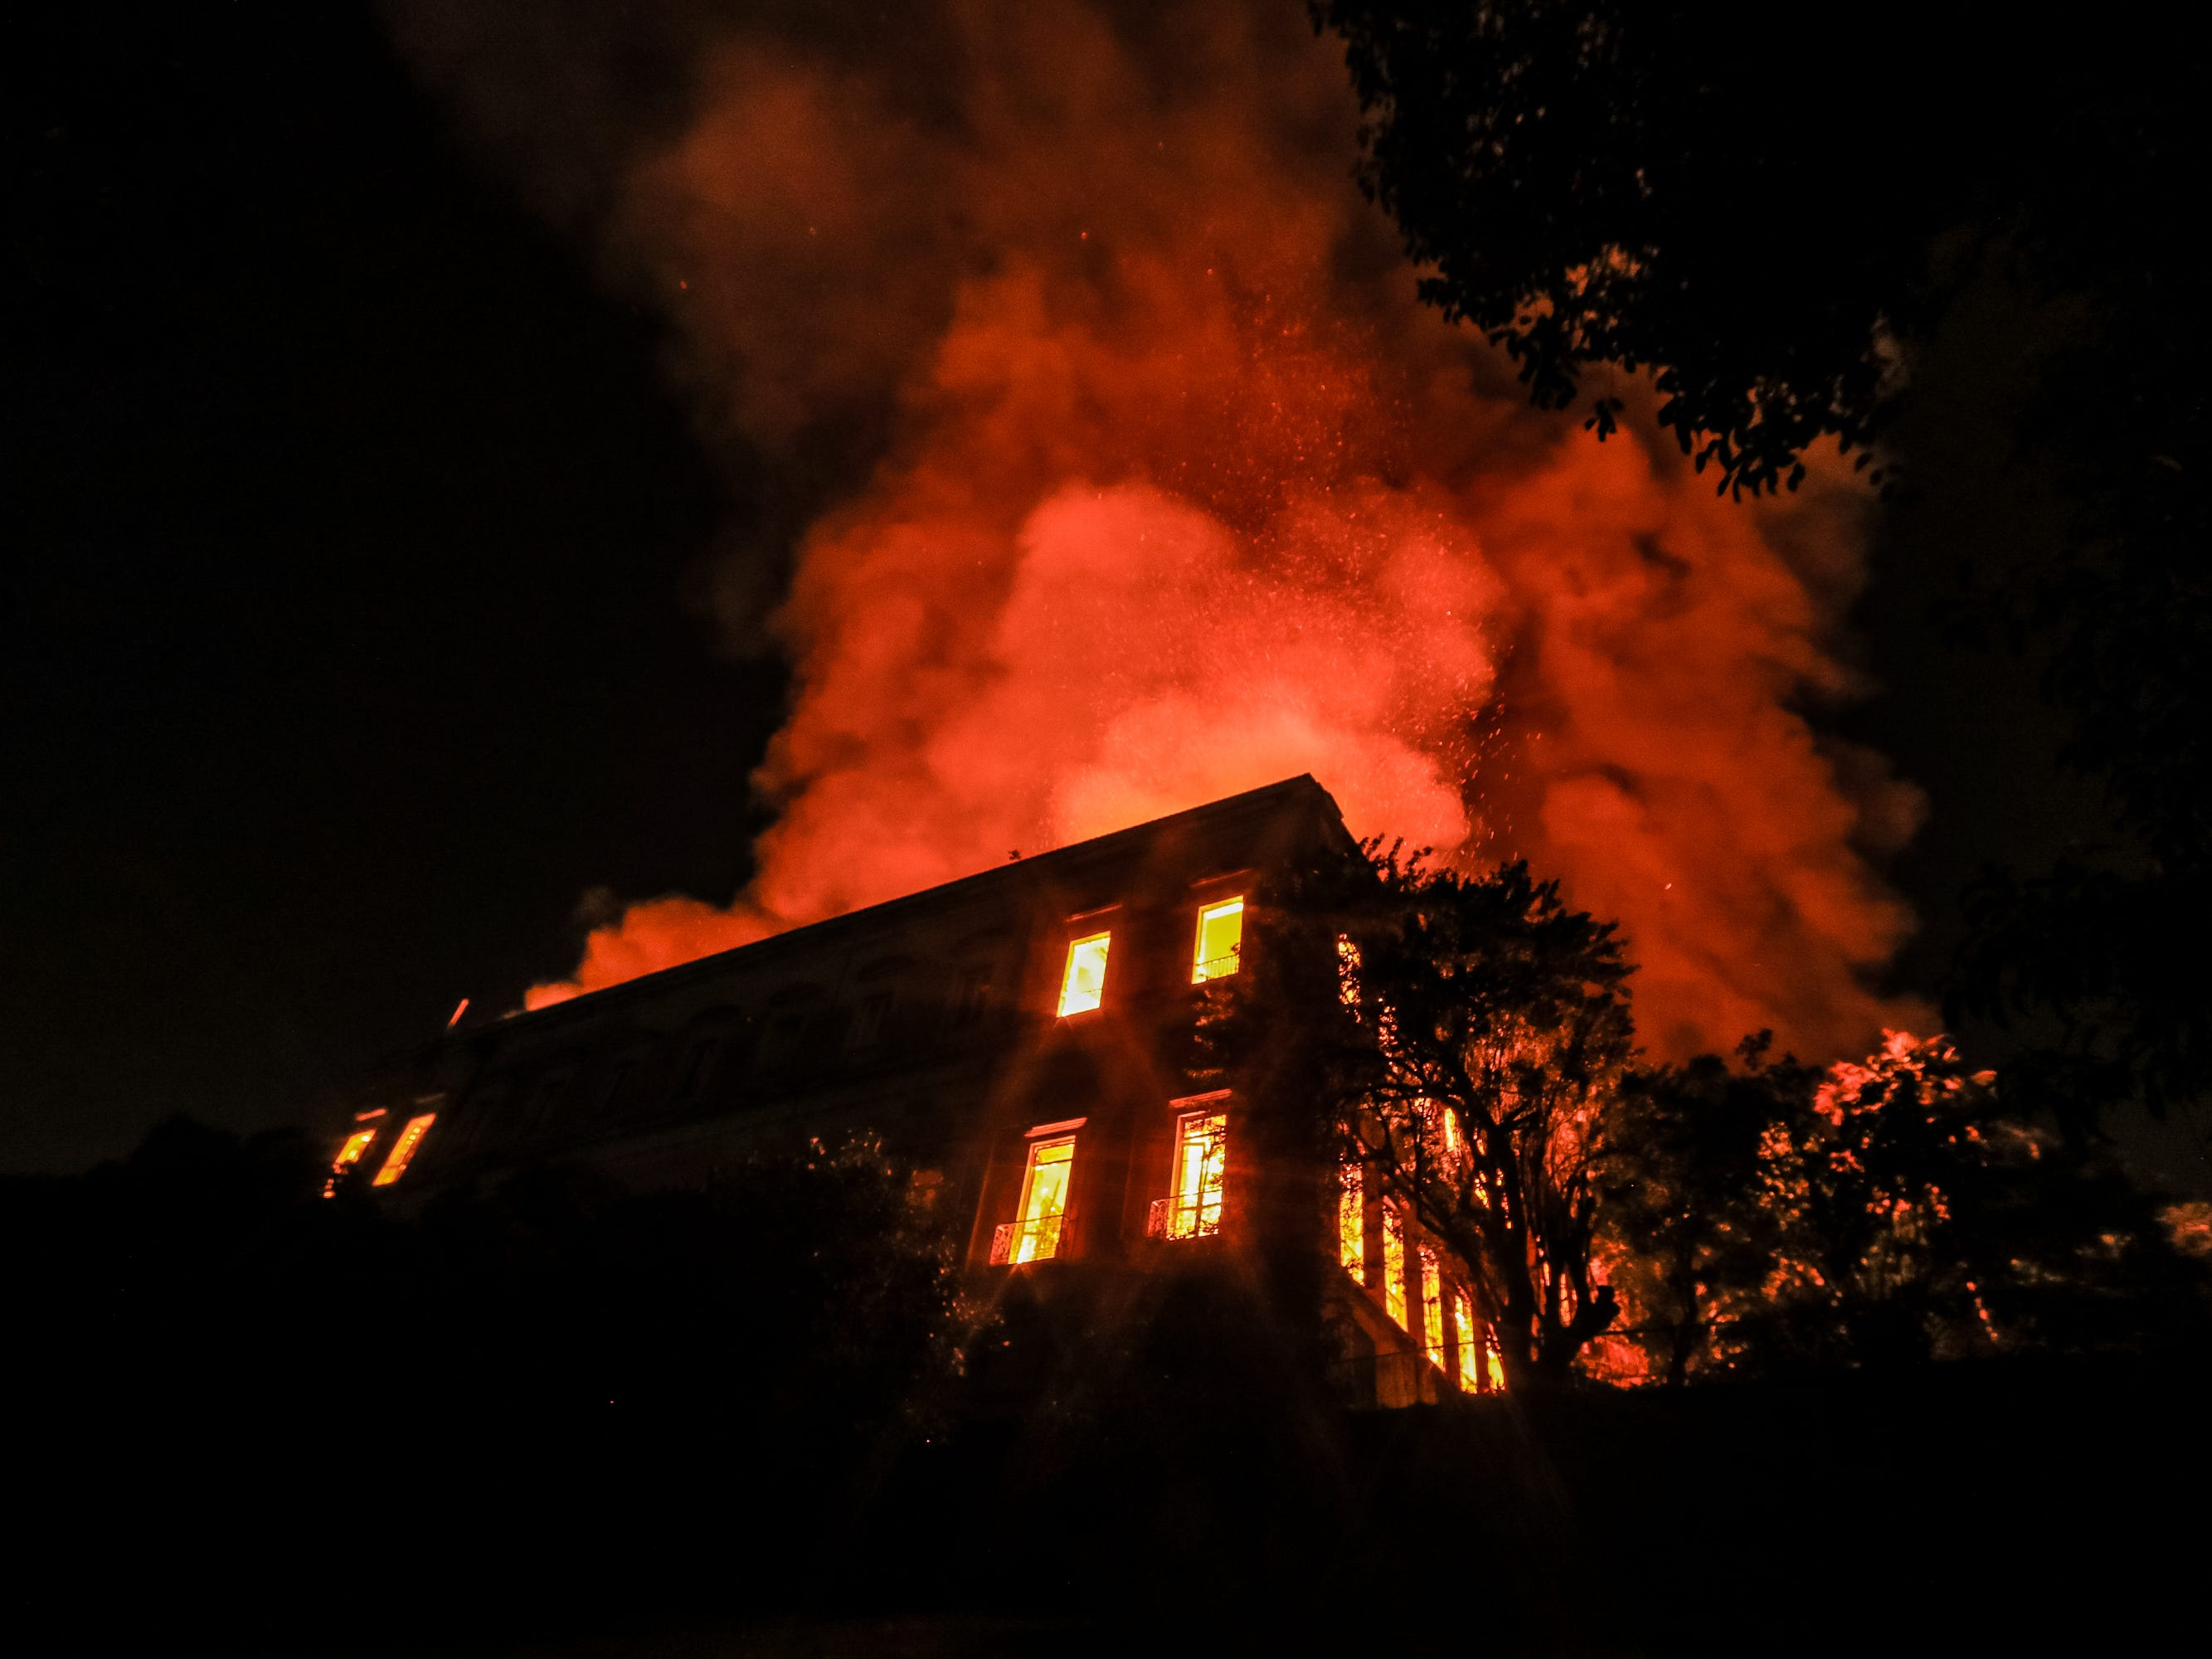 A fire burns at the National Museum of Brazil on September 2, 2018, in Rio de Janeiro, Brazil. Its collection includes more than 20 million items ranging from archaeological findings to historical memorabilia.